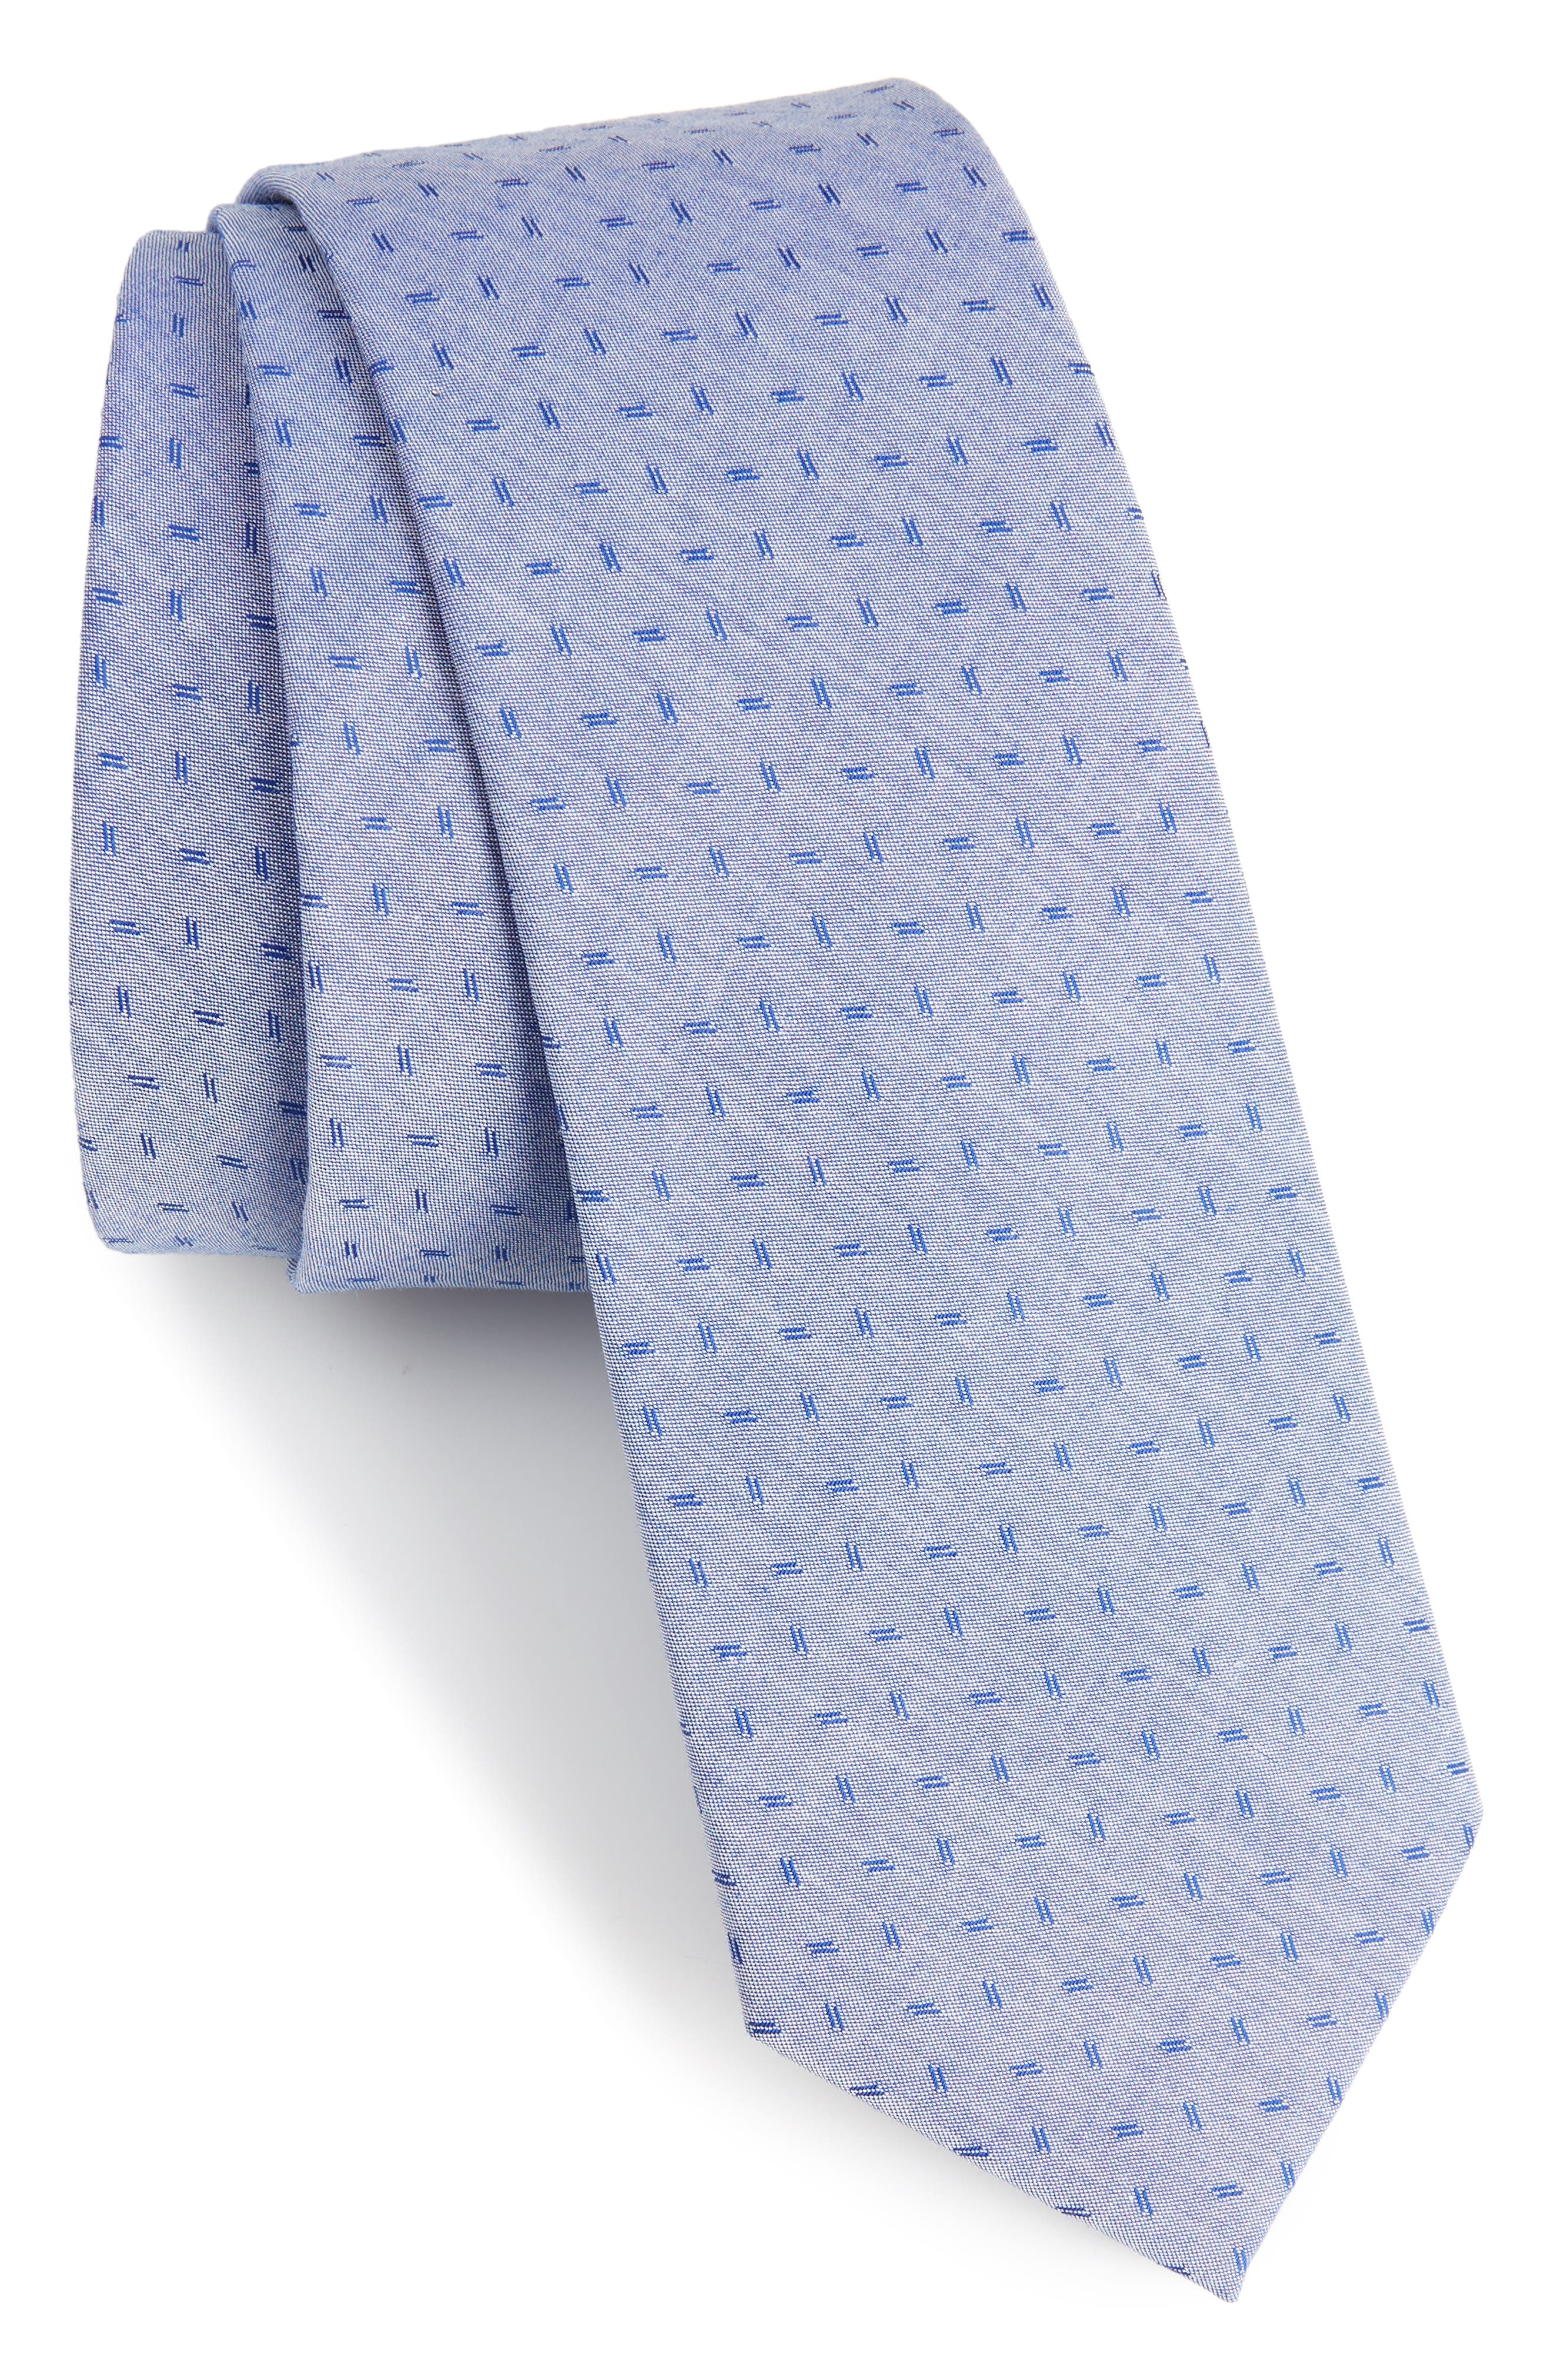 Indigo Microgrid Cotton Skinny Tie,                             Main thumbnail 1, color,                             400